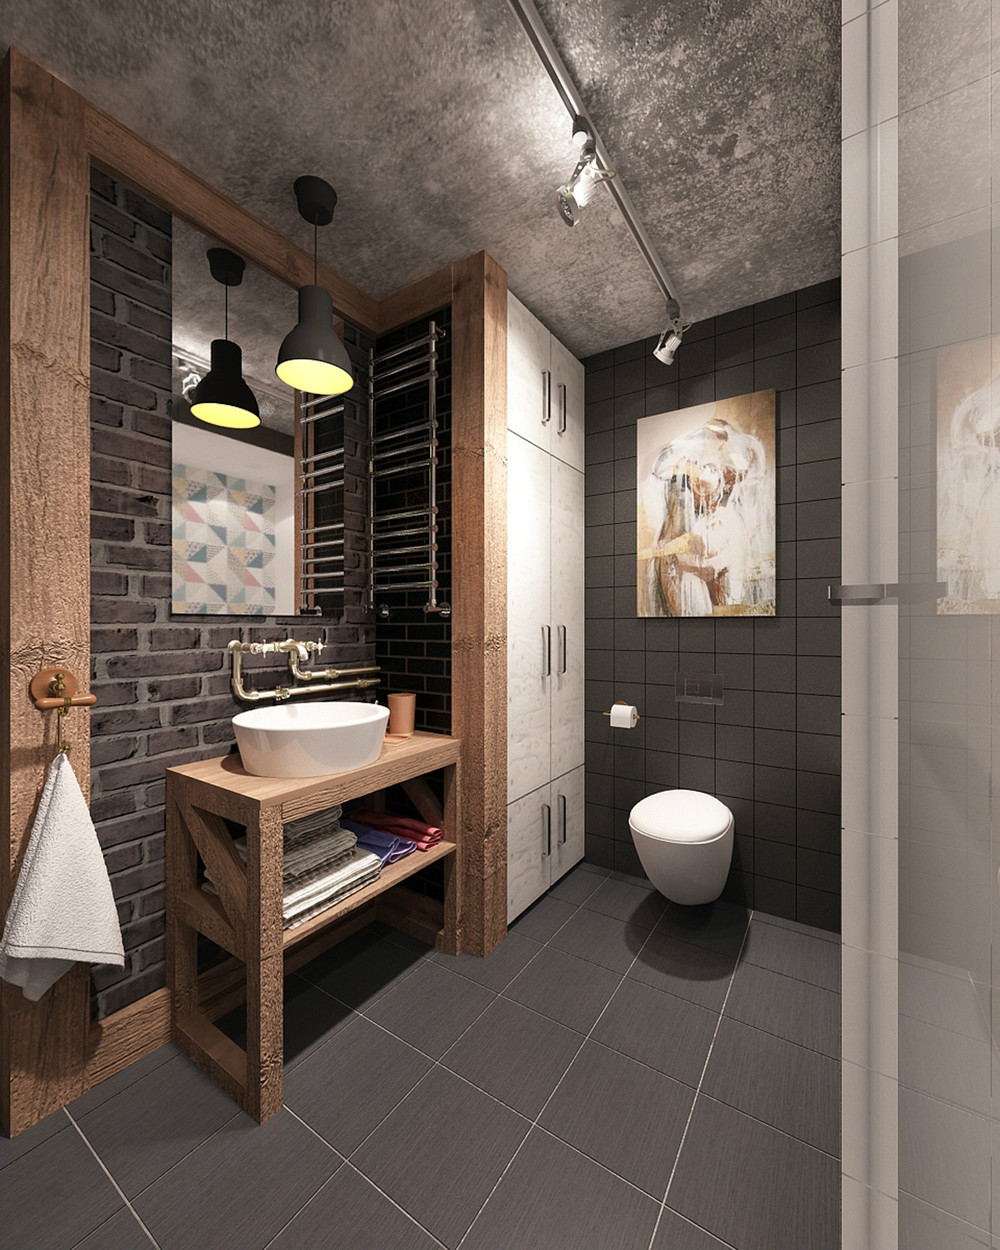 Bathroom Ideas: 4 Small & Beautiful Apartments Under 50 Square Meters